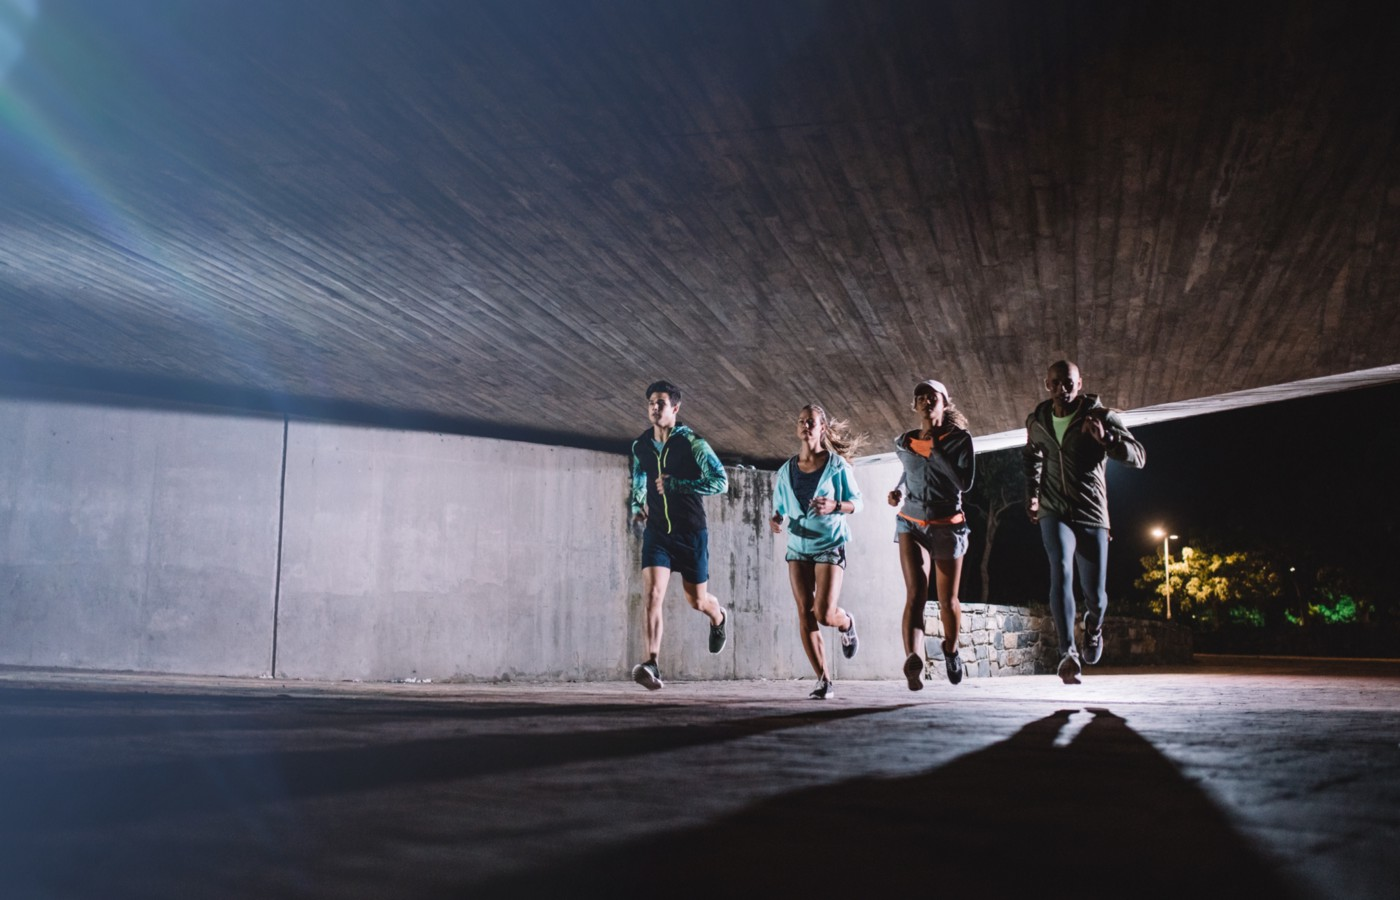 Four people jogging under an overpass